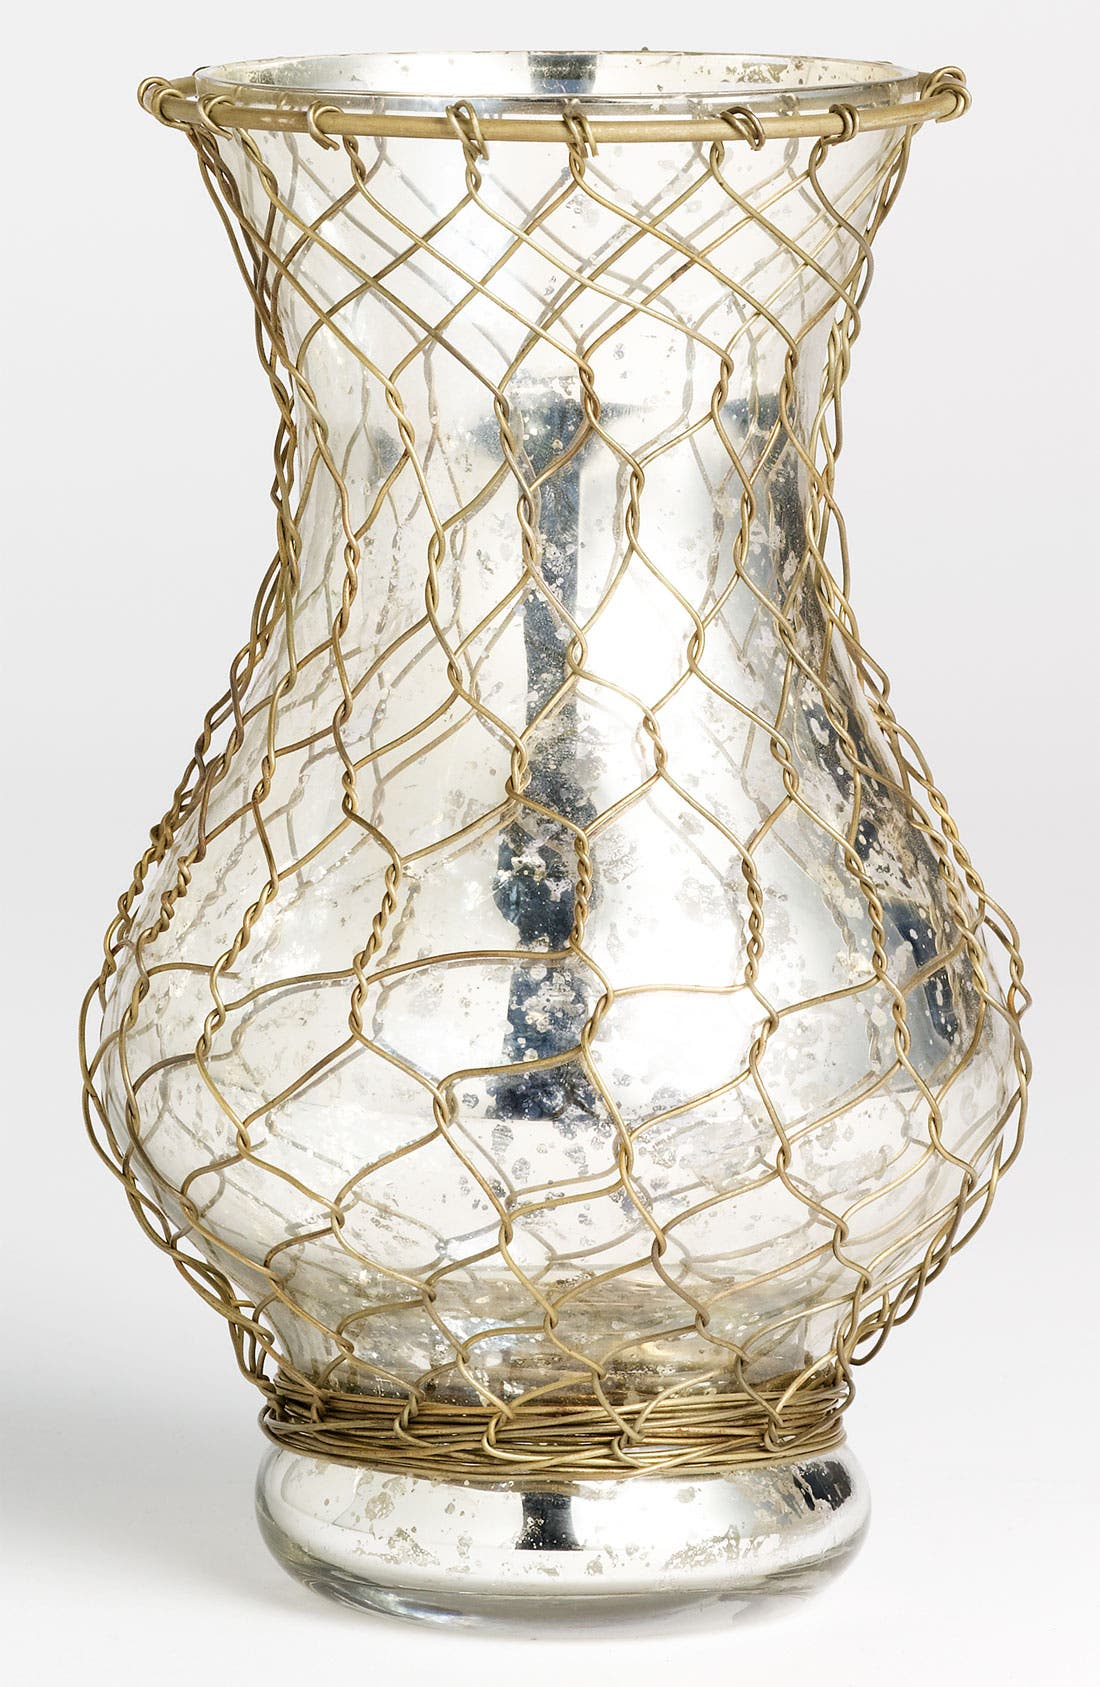 Main Image - Wire-Wrapped Mercury Glass Vase, Wide